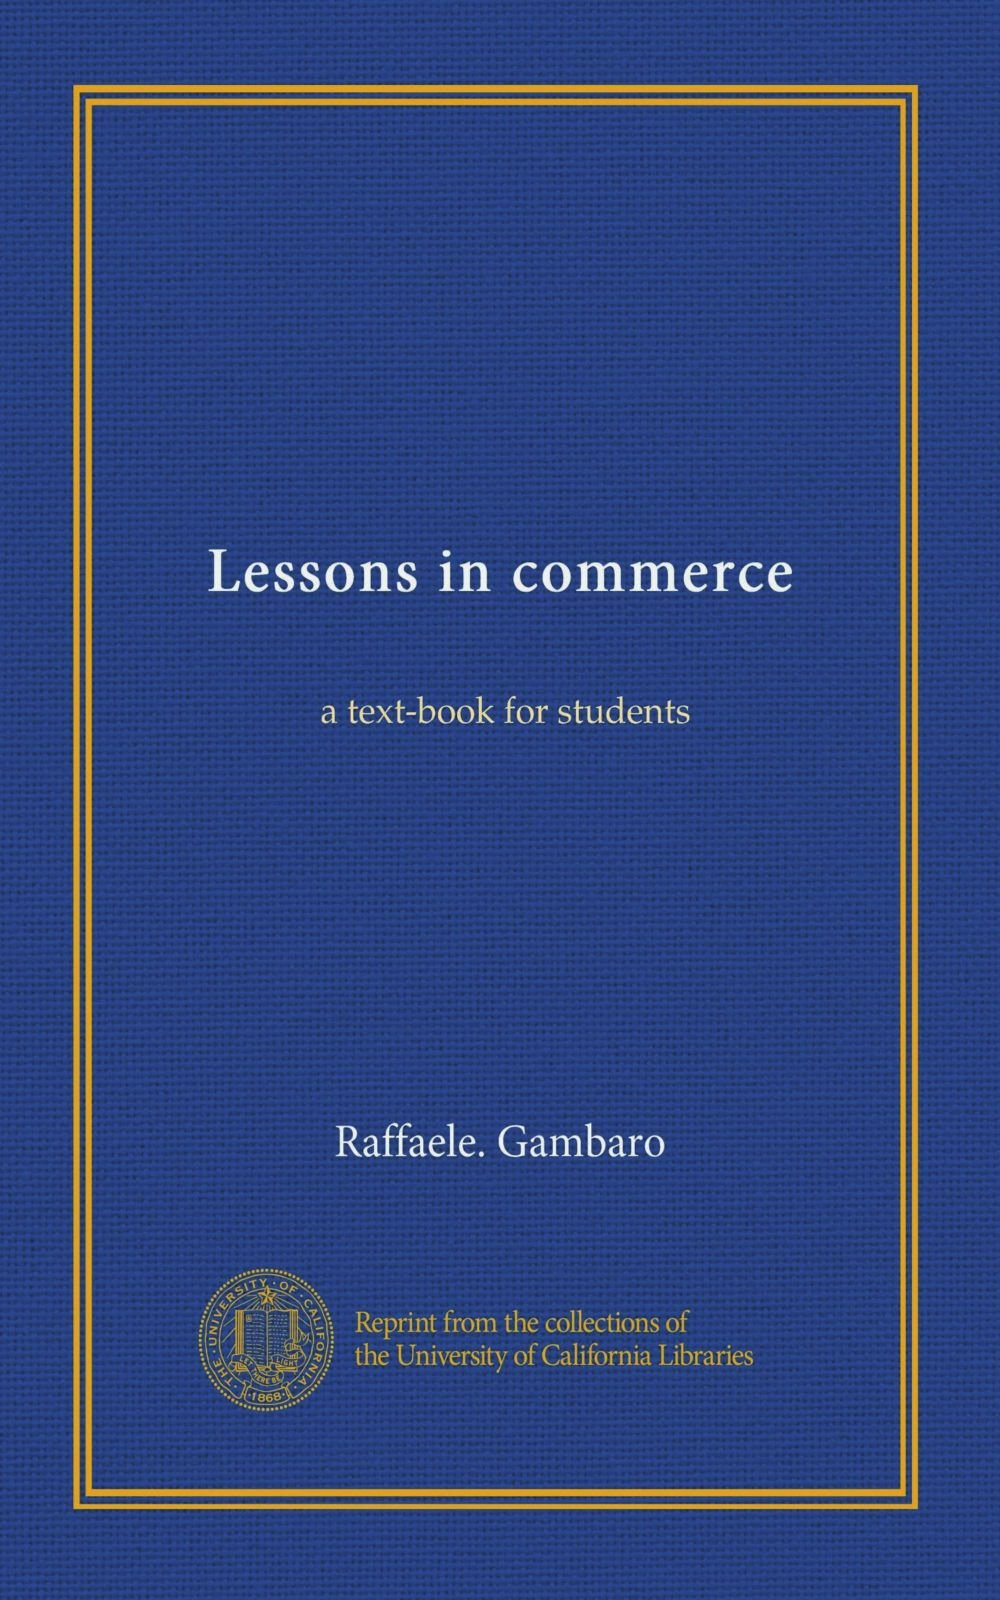 Download Lessons in commerce: a text-book for students ebook